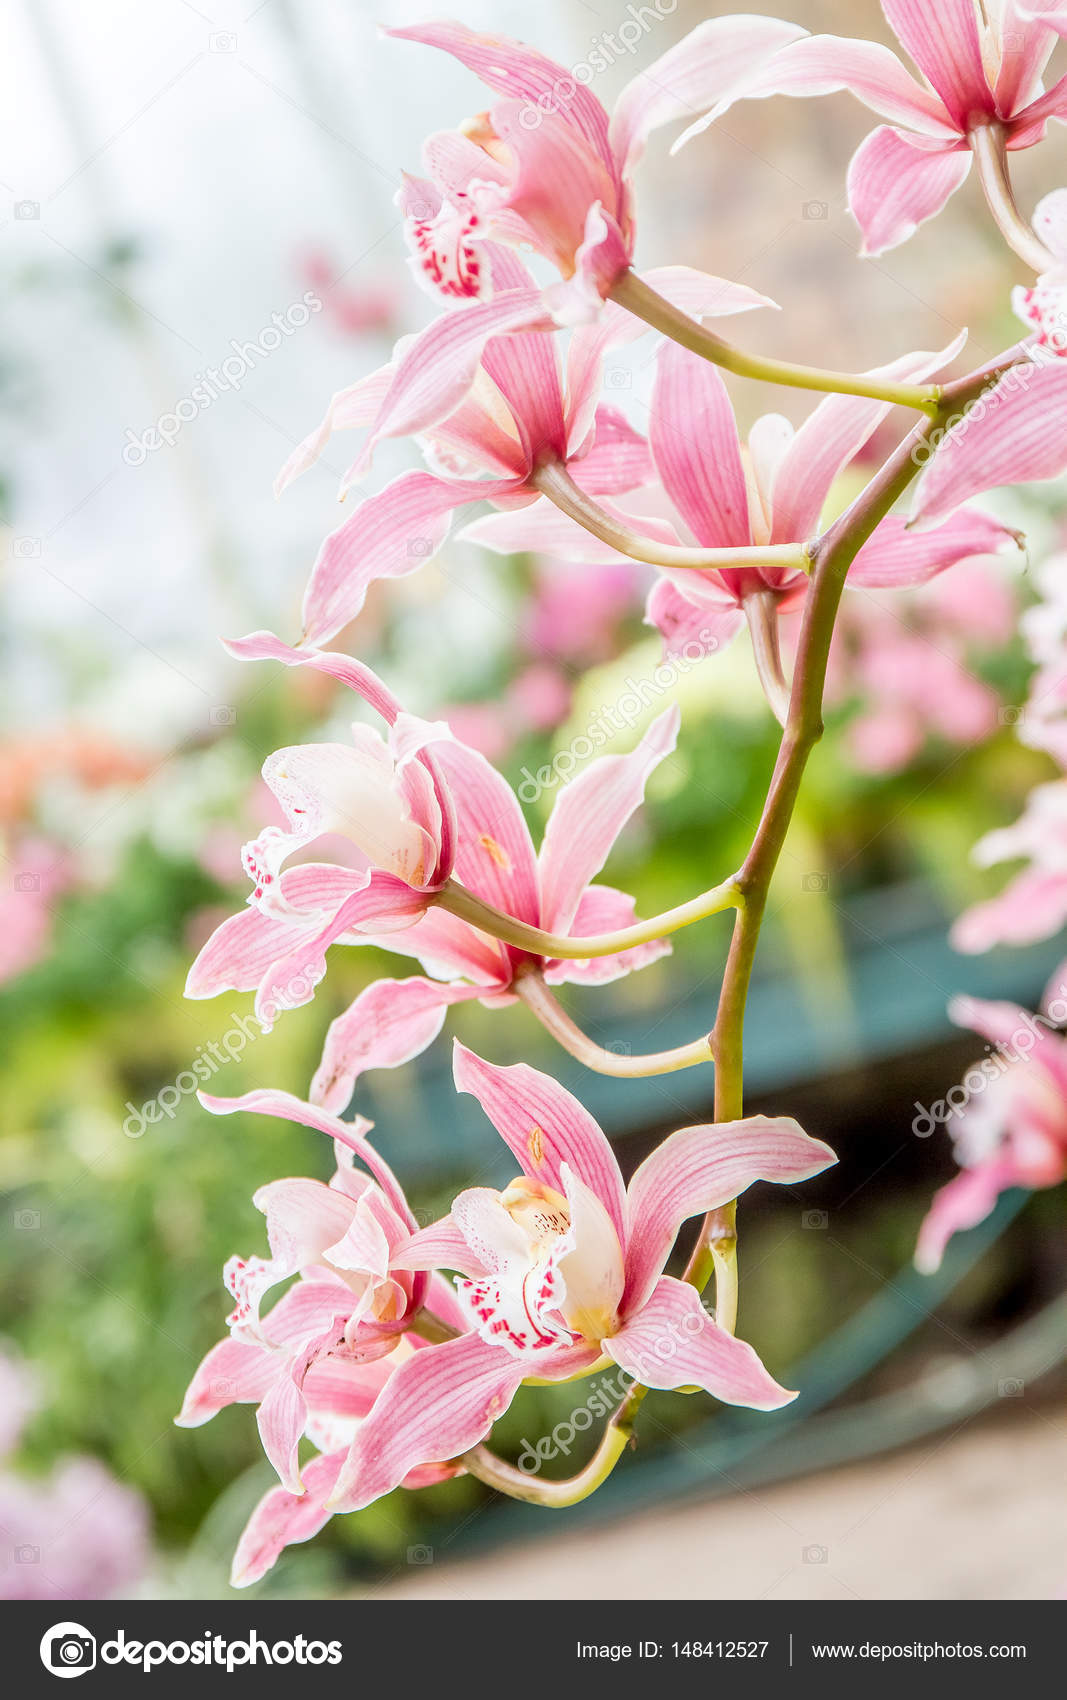 Beautiful orchid flowers stock photo volare2004 148412527 beautiful orchid flowers on natural background photo by volare2004 izmirmasajfo